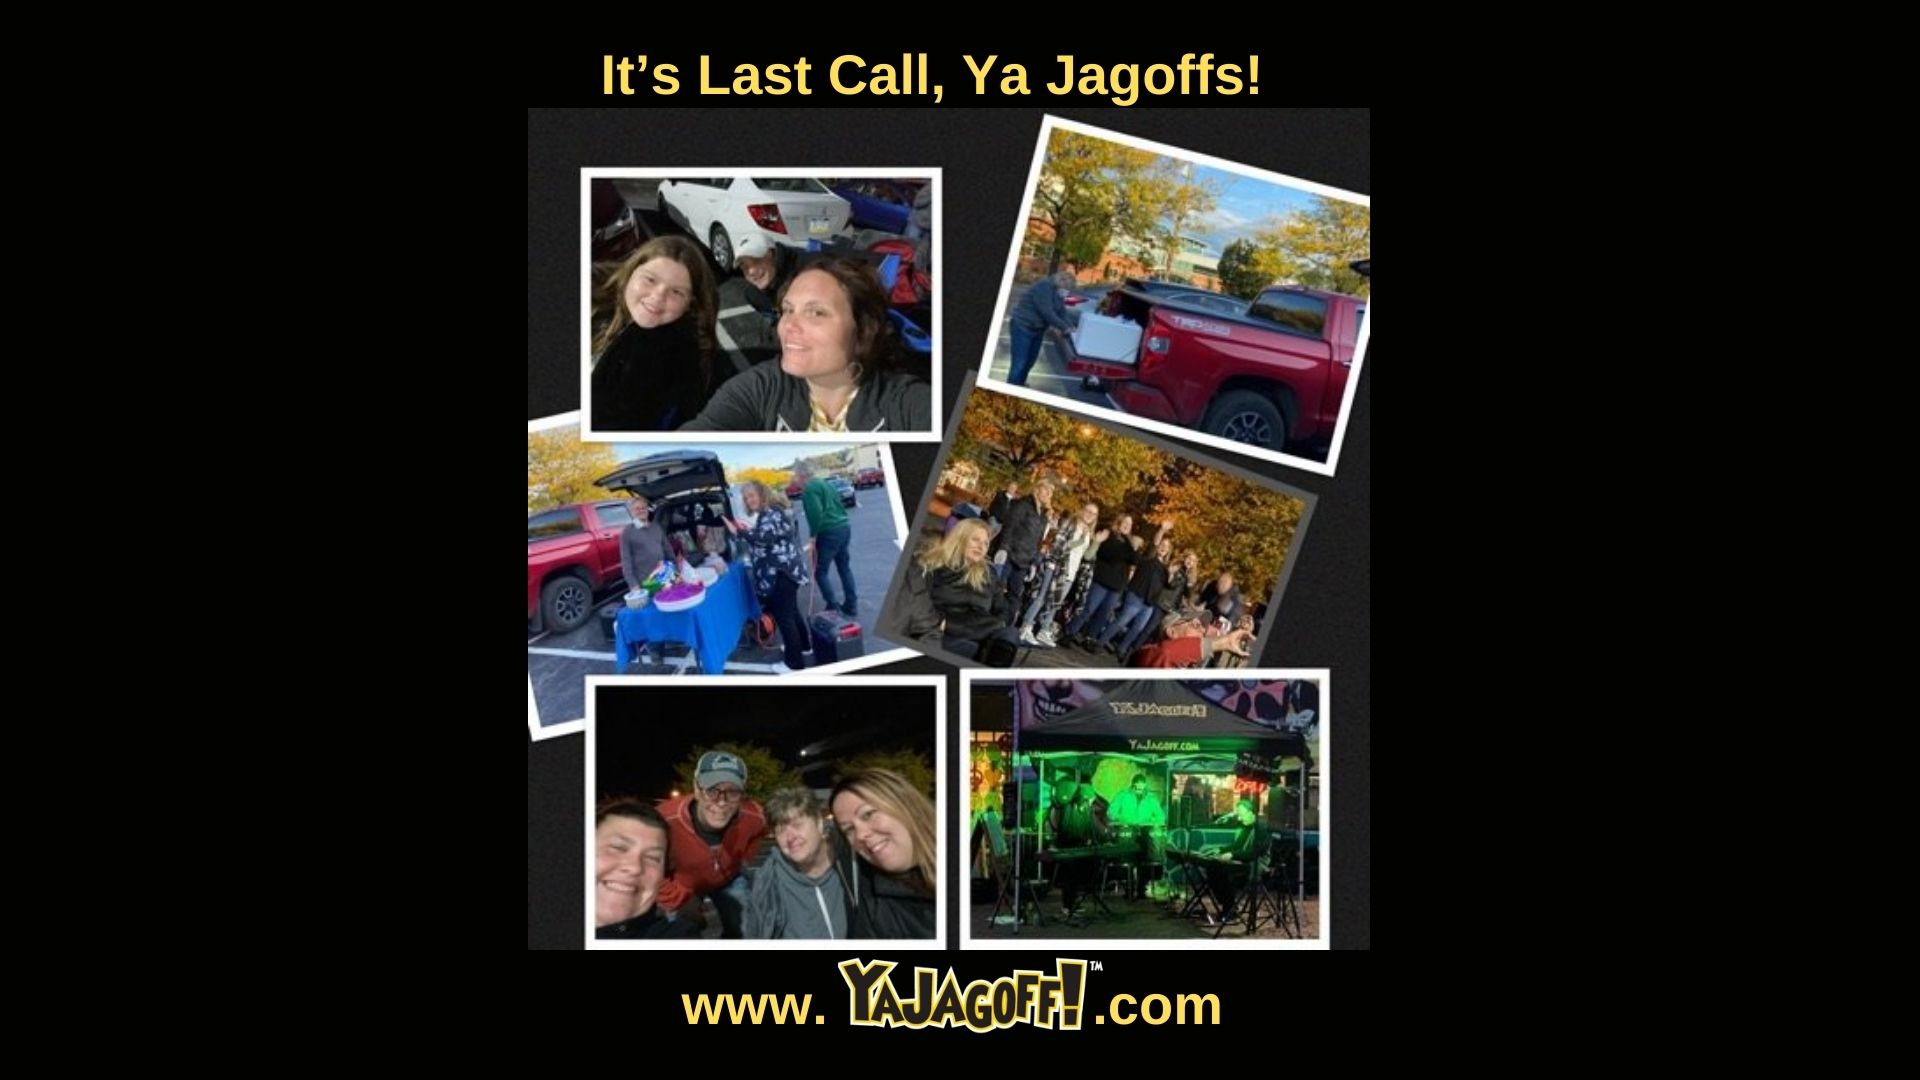 Dueling Pianos on YaJagoff Podcast Again